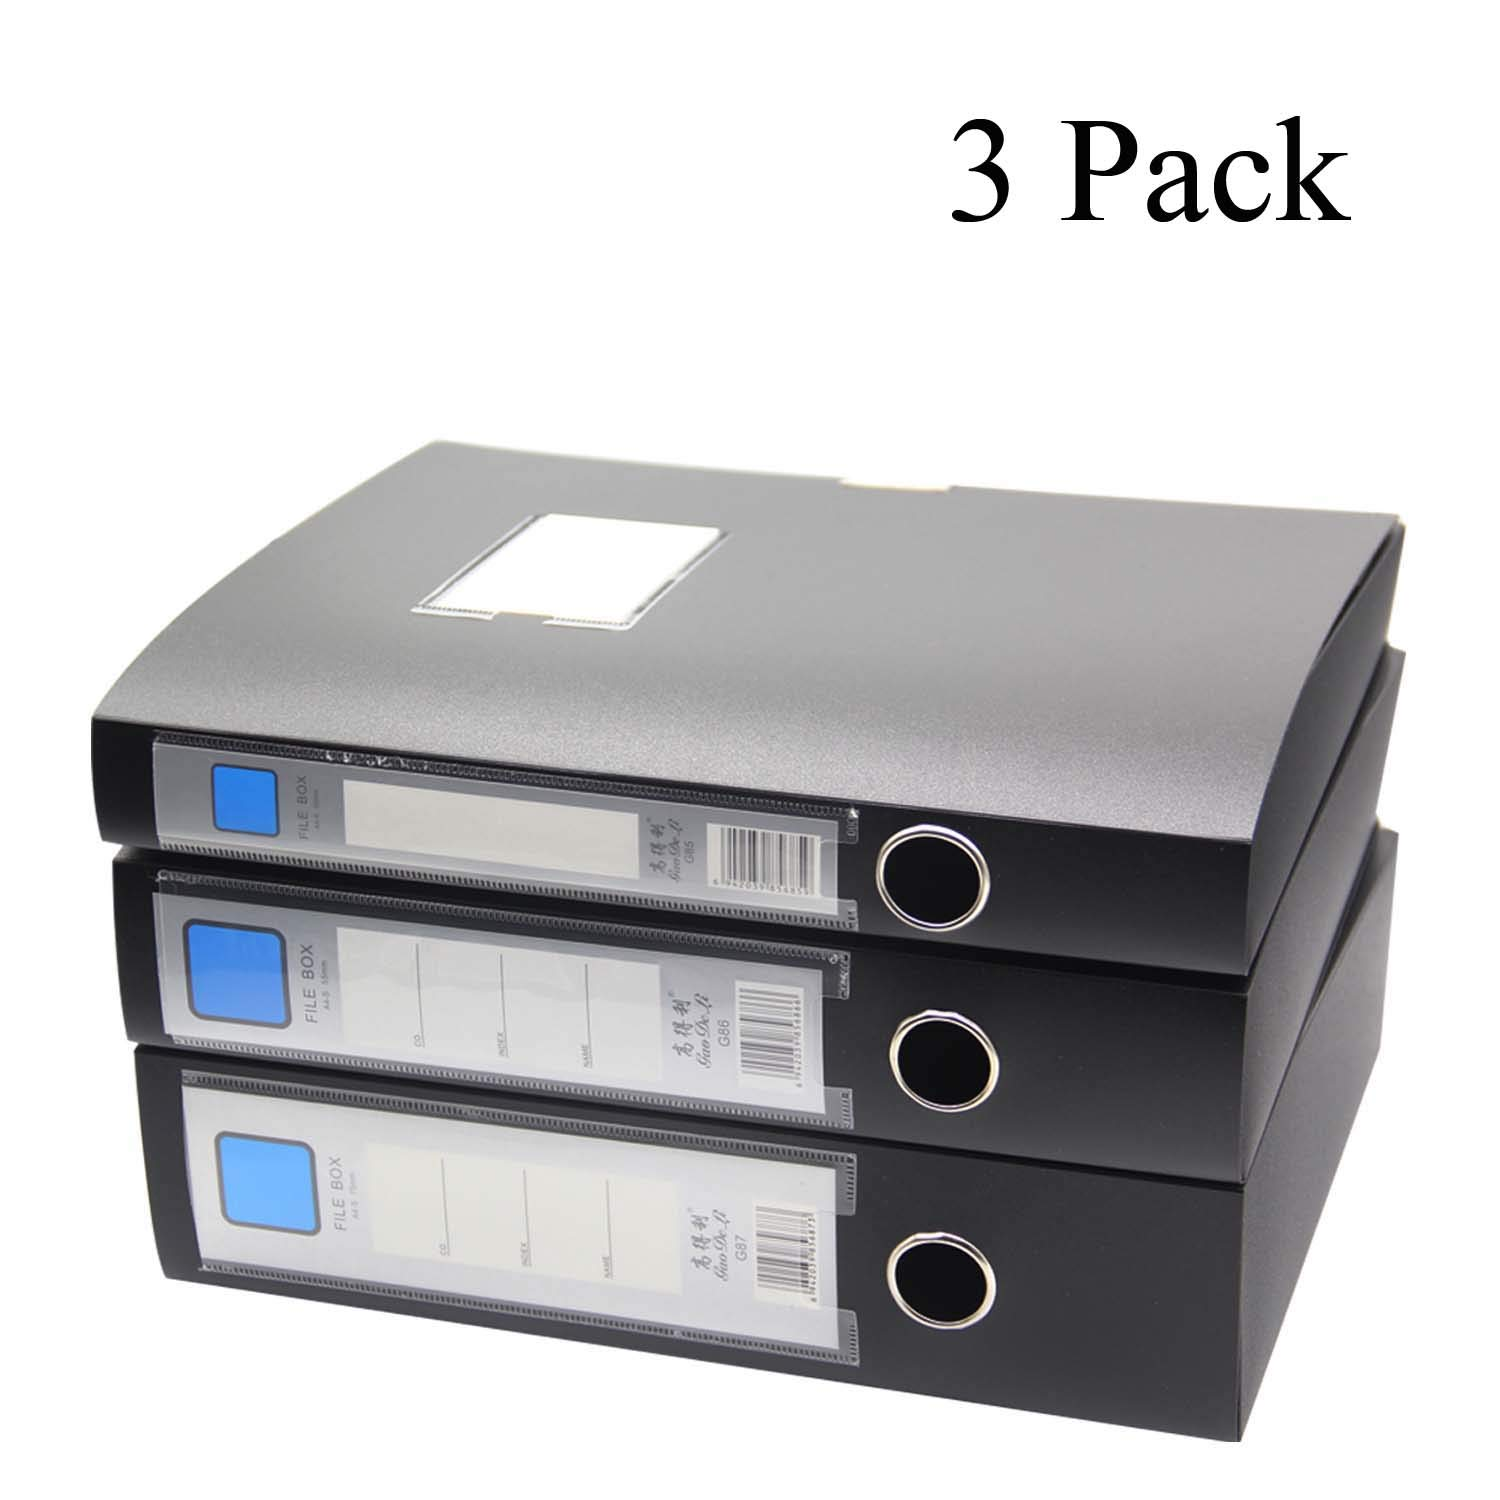 H&W 3 Pack, A4 Storage Archives Cases File Boxes Plastic with Lid, Box File, Height 35 55 75mm,Black (WG3-Z3)